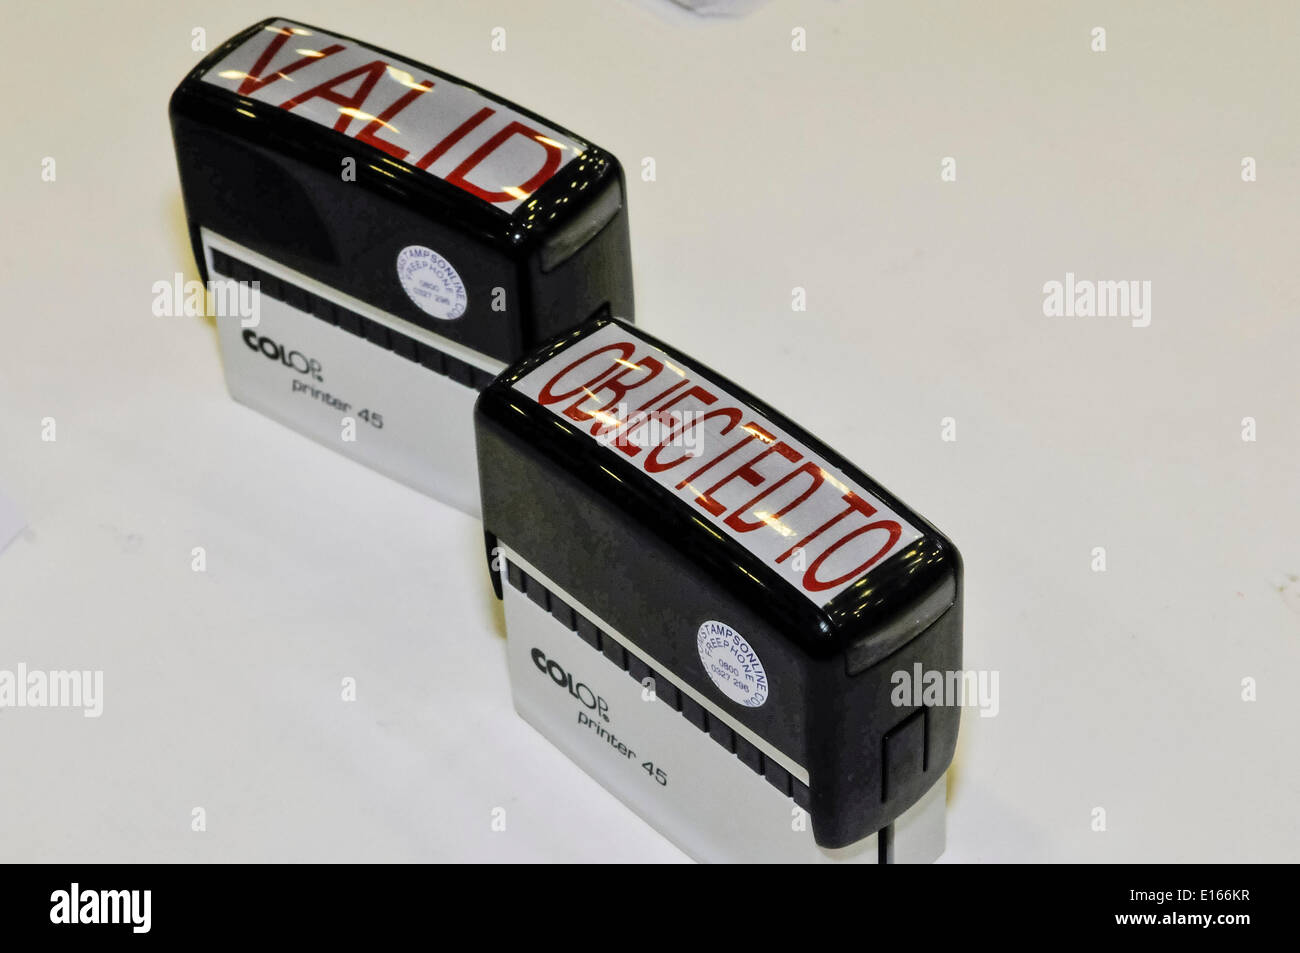 Newtownabbey, Northern Ireland. 23 May 2014 - Rubber stamps to mark 'Valid' and 'Objected to' voting slips at the Local Council Elections in Northern Ireland Credit:  Stephen Barnes/Alamy Live News - Stock Image